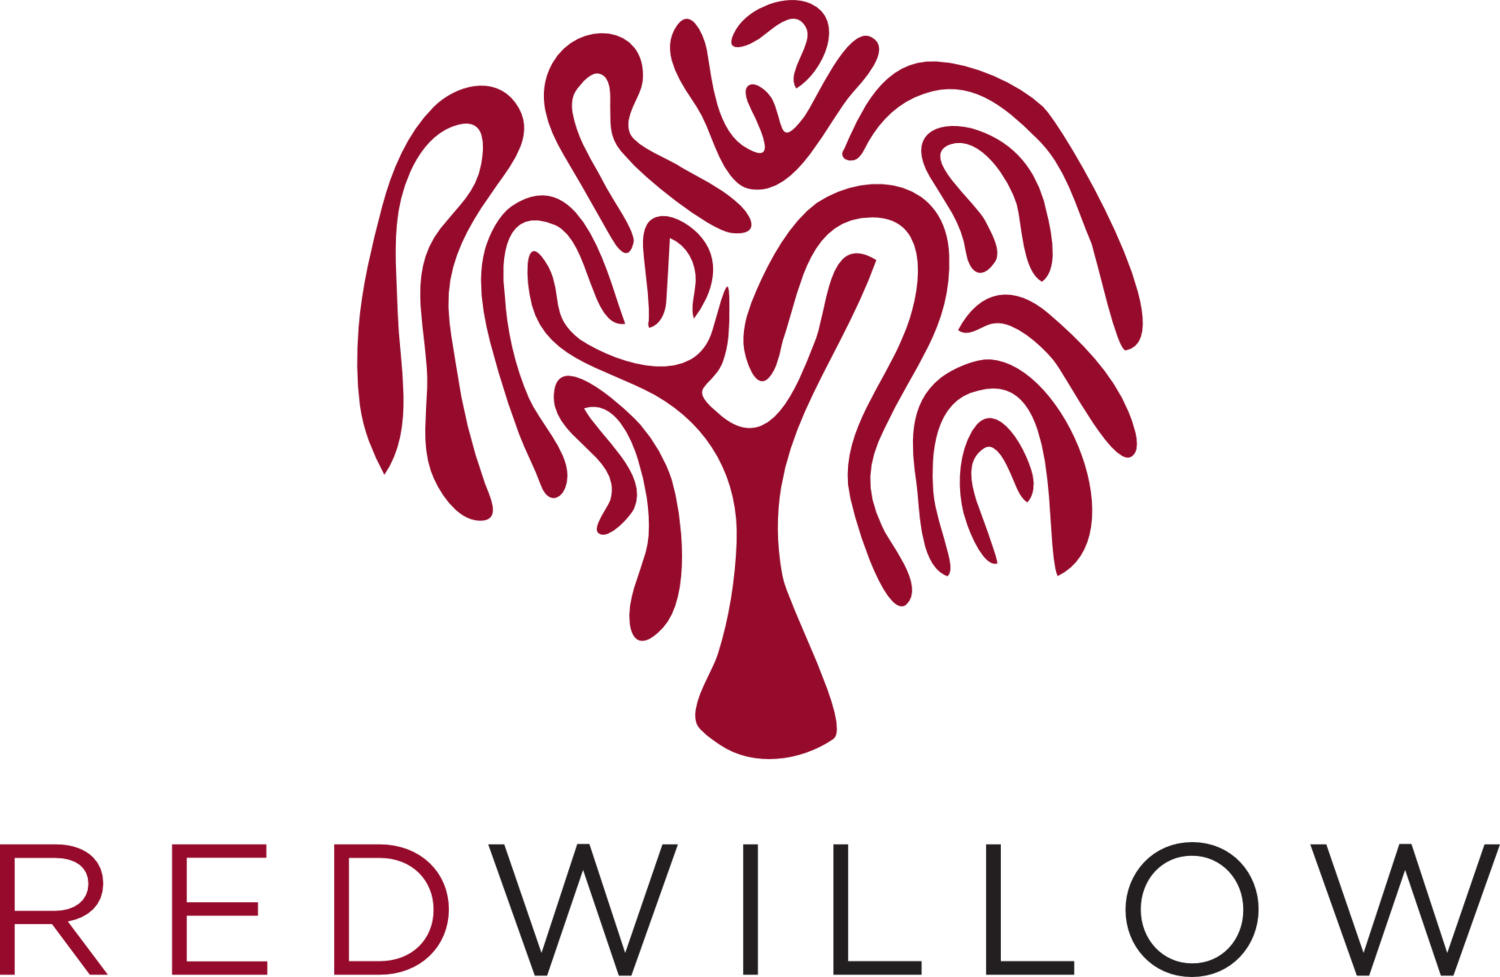 RedWillow | Brewery and Bar in Macclesfield